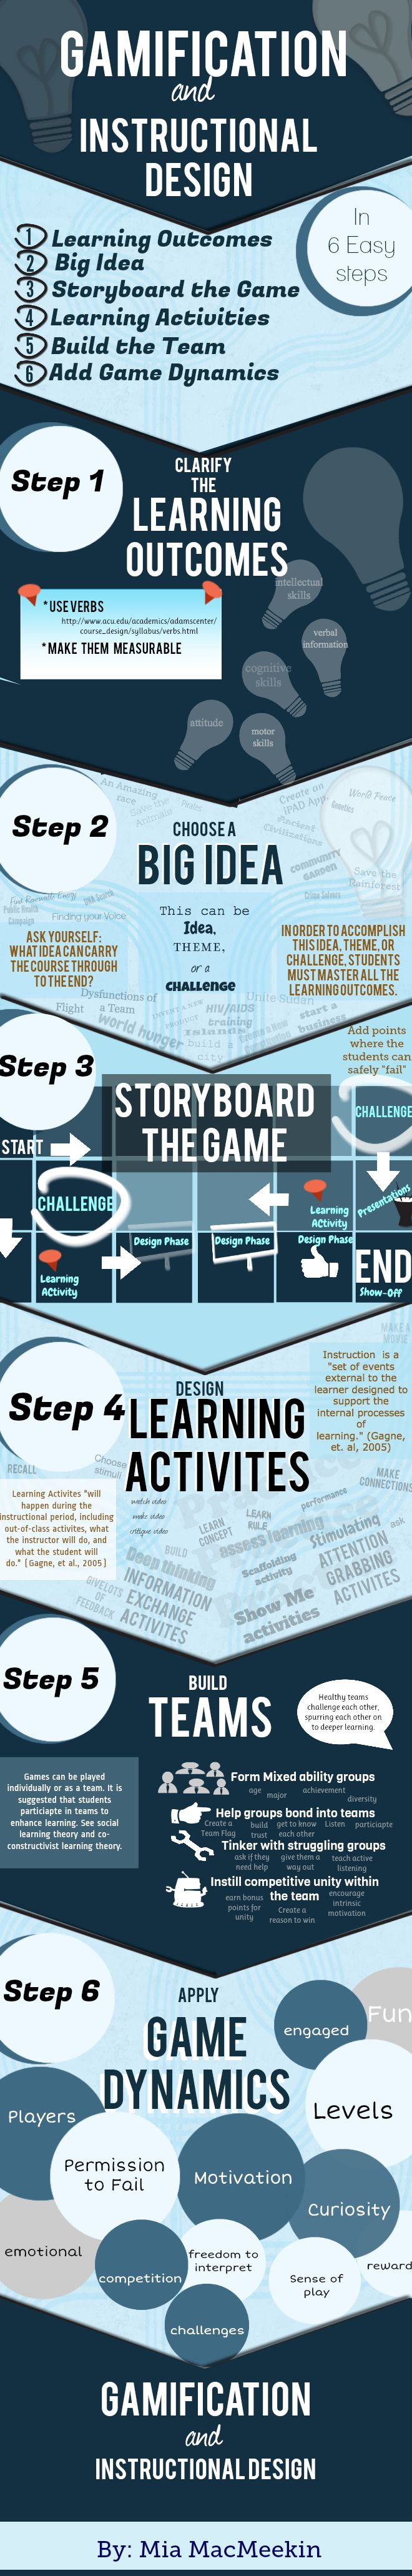 149 Best Images About Gamification On Pinterest. Report Cover Template Word Template. Bible Study Notebook Template. Operation Manager Resume Examples Template. Student Resumes For First Job Template. Google Docs Pie Chart Template. Online Ncaa Bracket Fill Out Template. What Is A Visual Resume Template. Samples Of Rsvp Cards For A Wedding Template